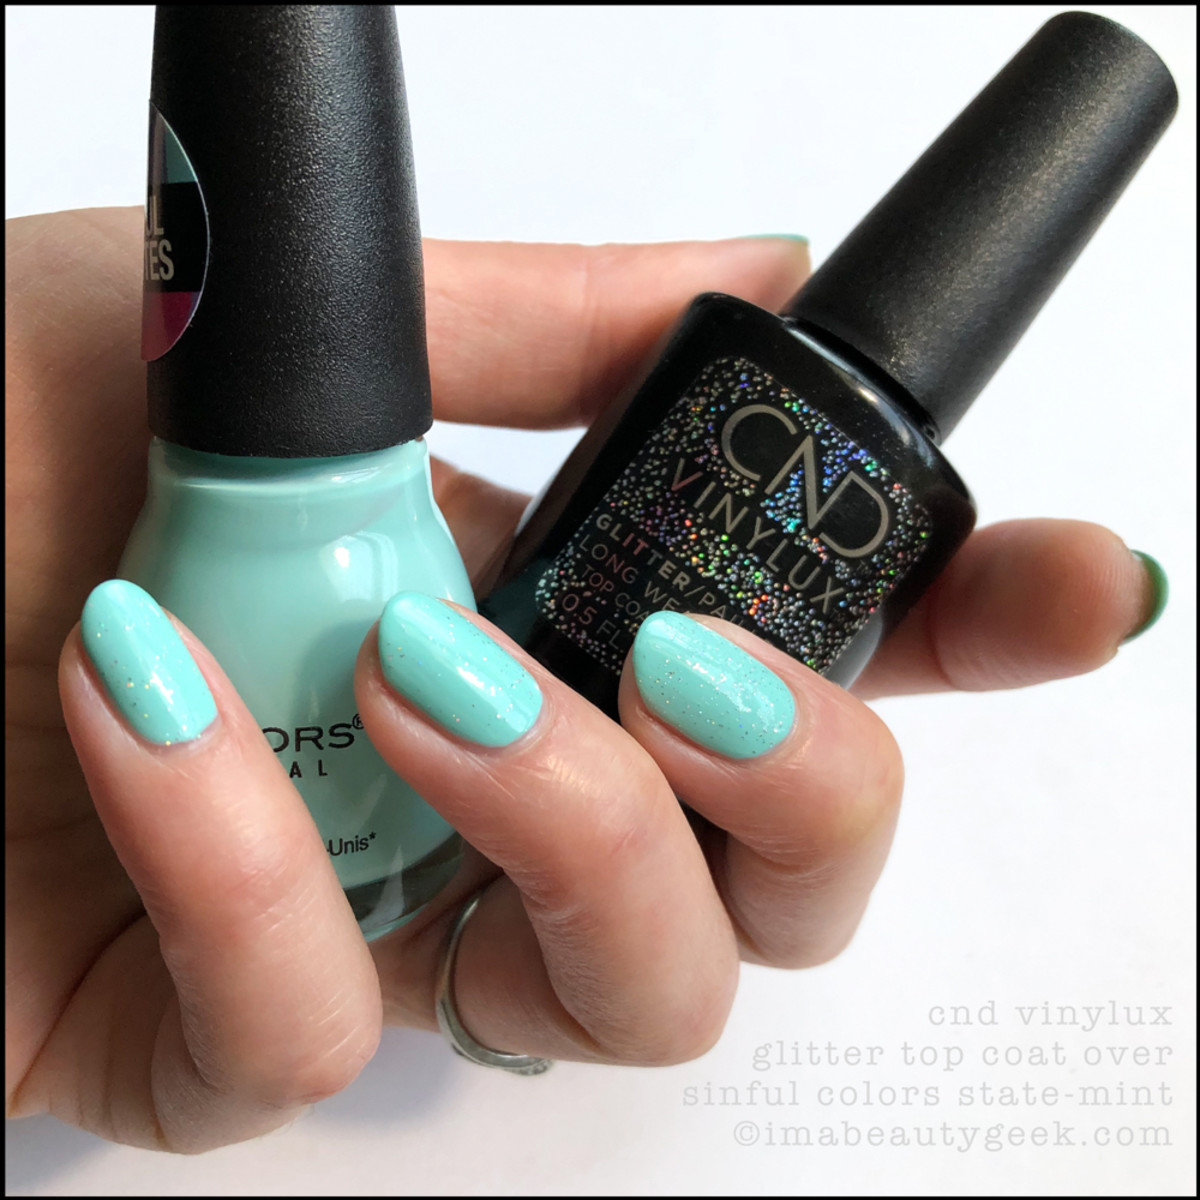 Sinful Colors State-mint with CND Glitter Top Coat _ Sinful Colors Swatches Matte Collection 2019